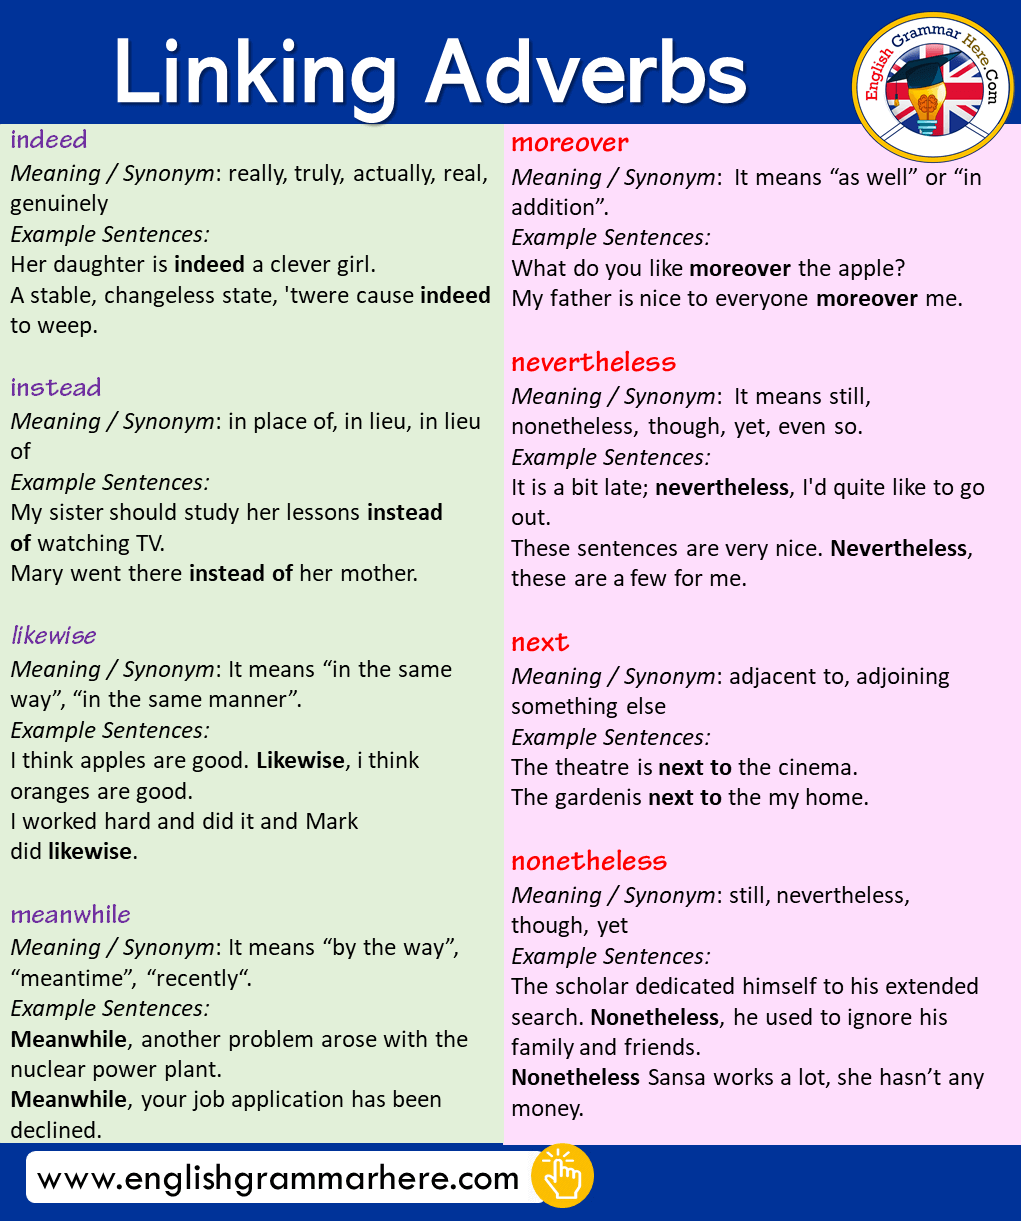 Linking Adverbs, Meanings and Example Sentences